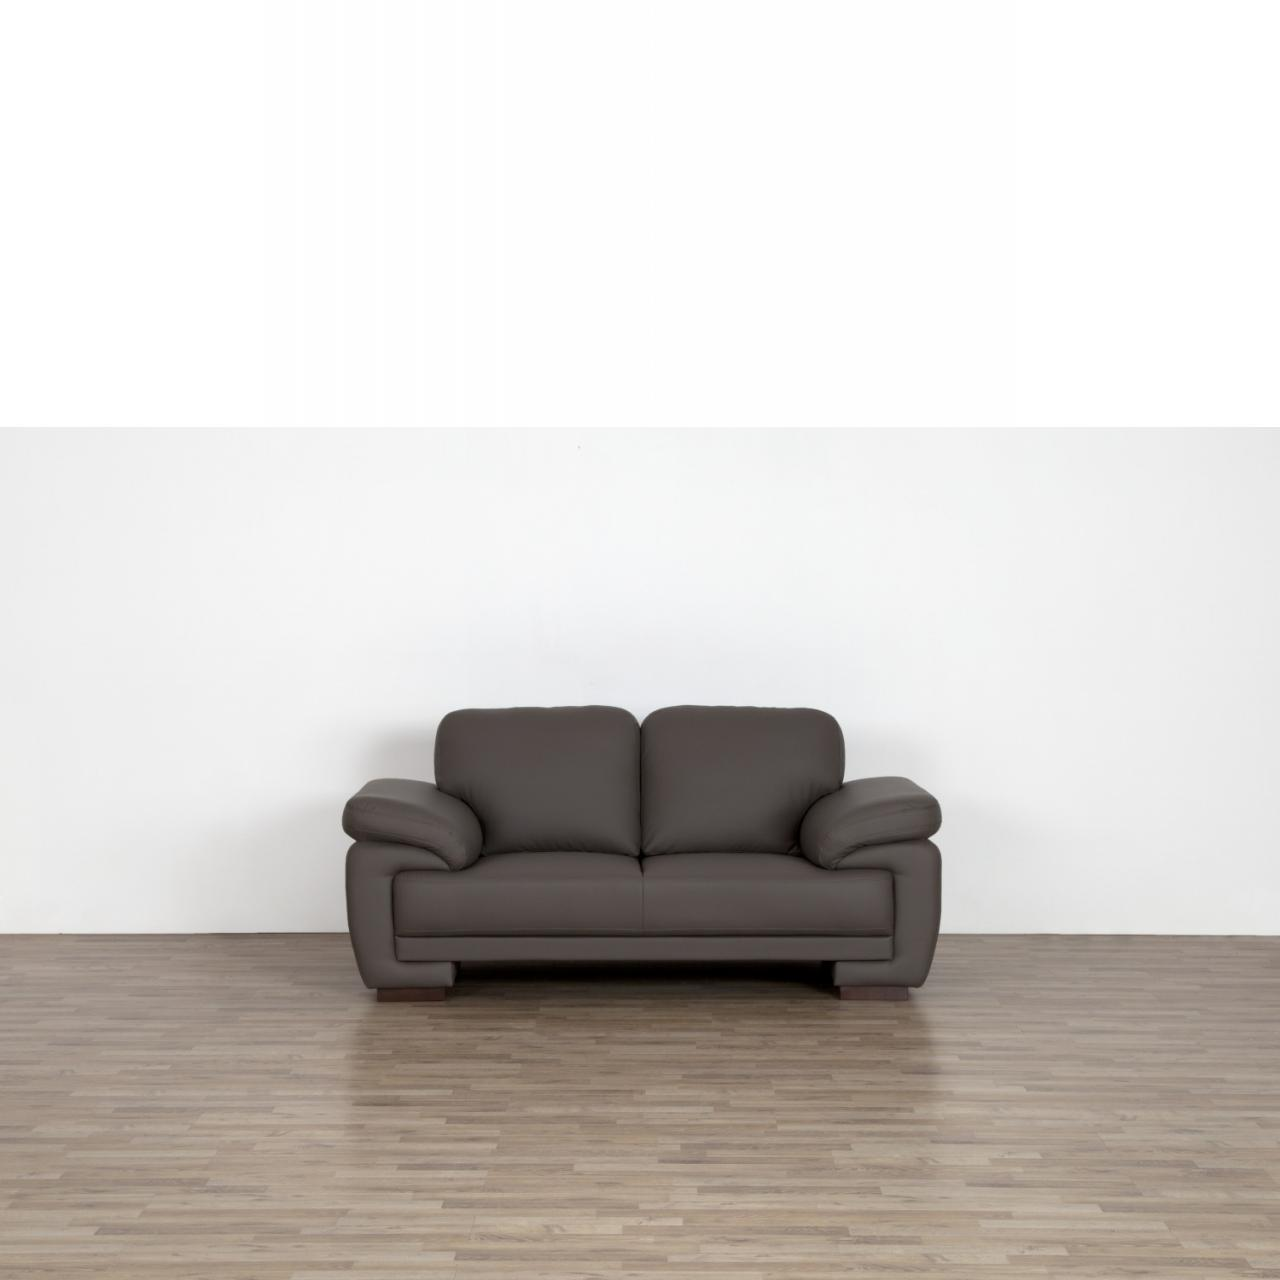 2er Sofa Neve in braun